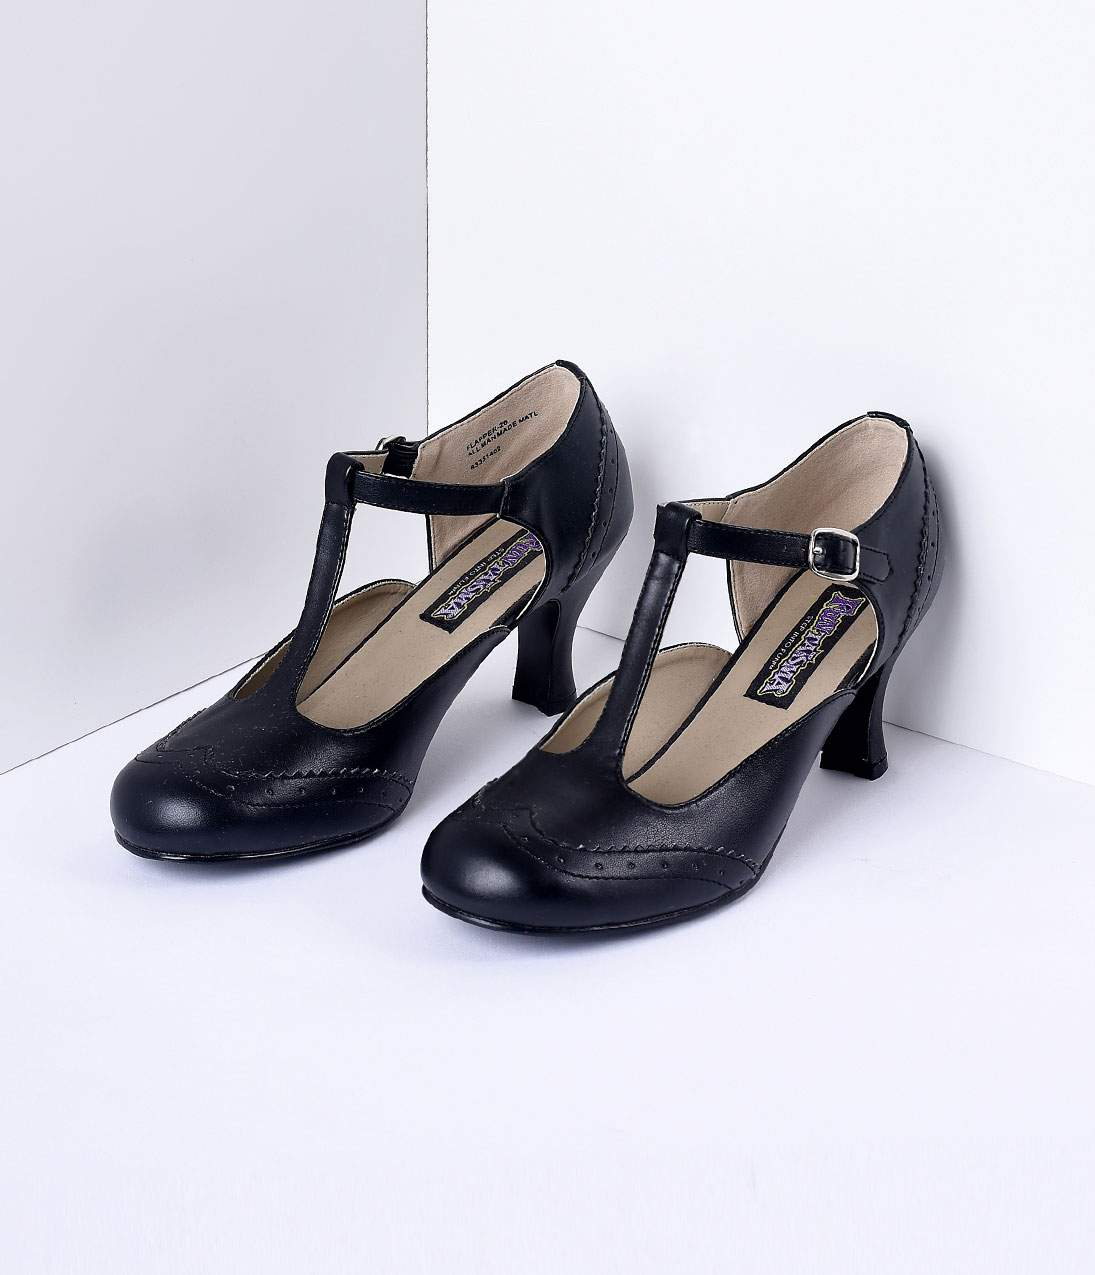 Vintage Style Shoes, Vintage Inspired Shoes Black T-Strap Mary Jane Kitten Heels $58.00 AT vintagedancer.com